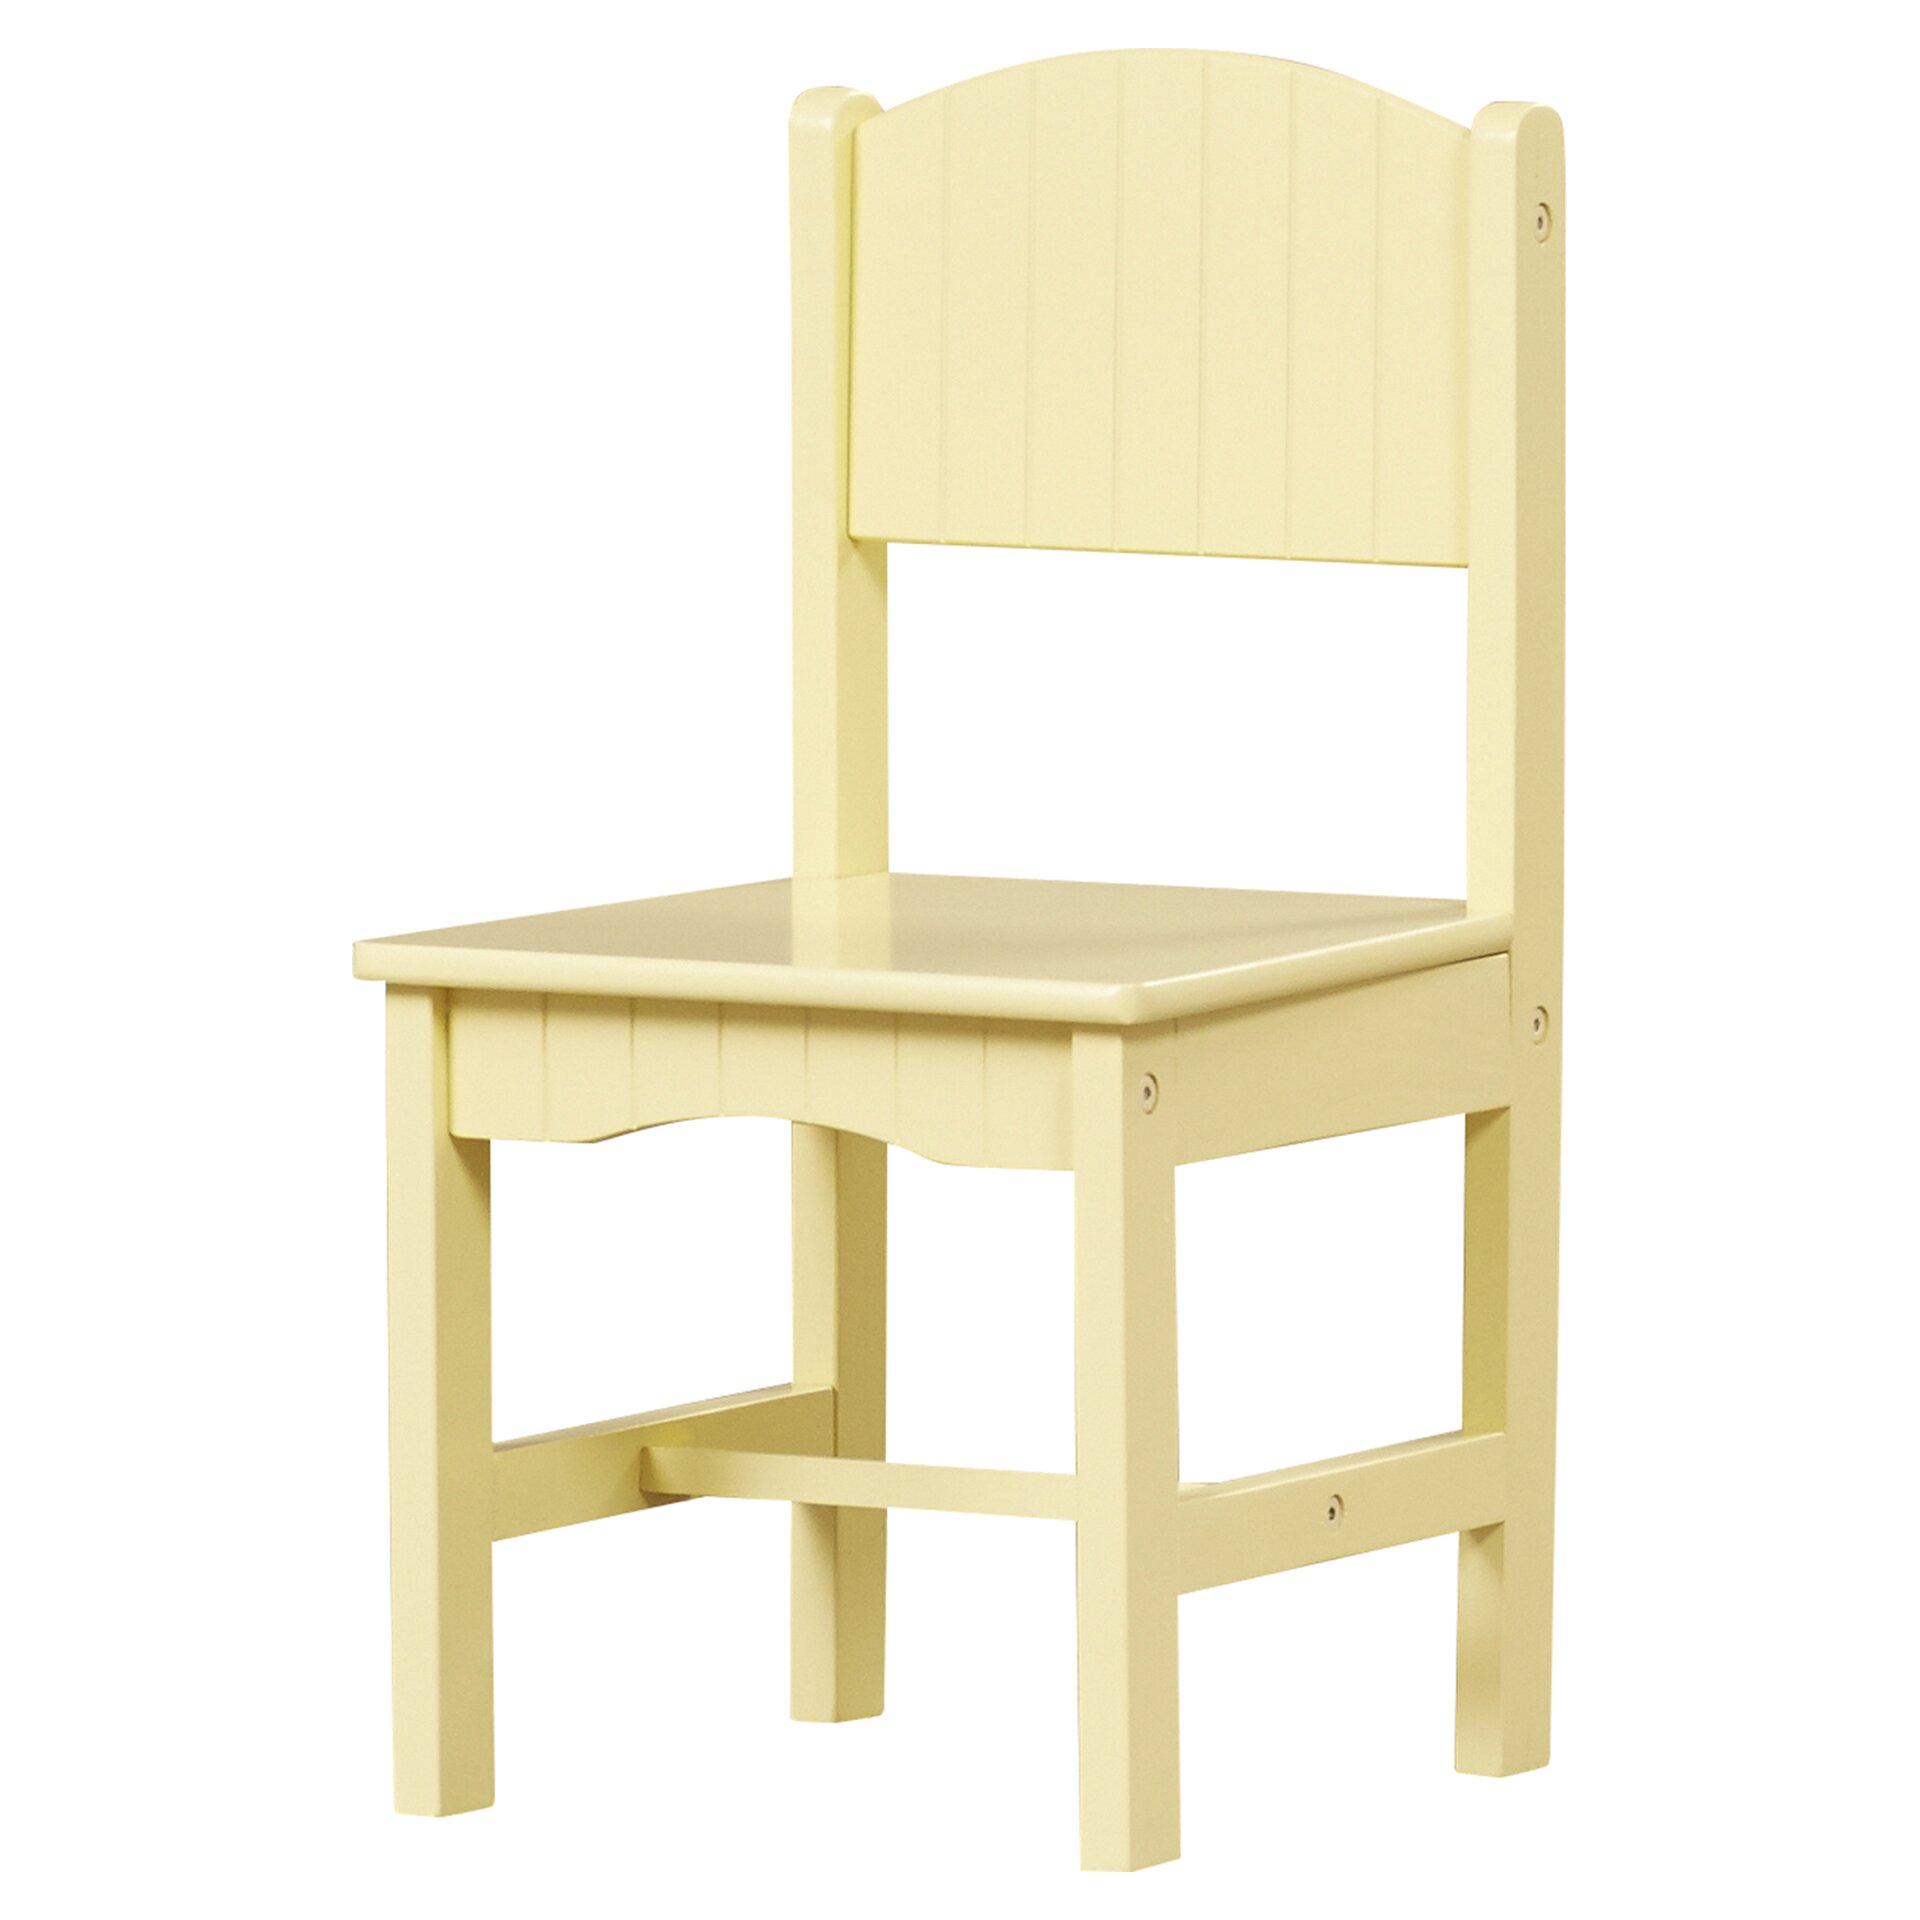 Kidkraft nantucket kids 5 piece table chair set for Kid craft table and chairs